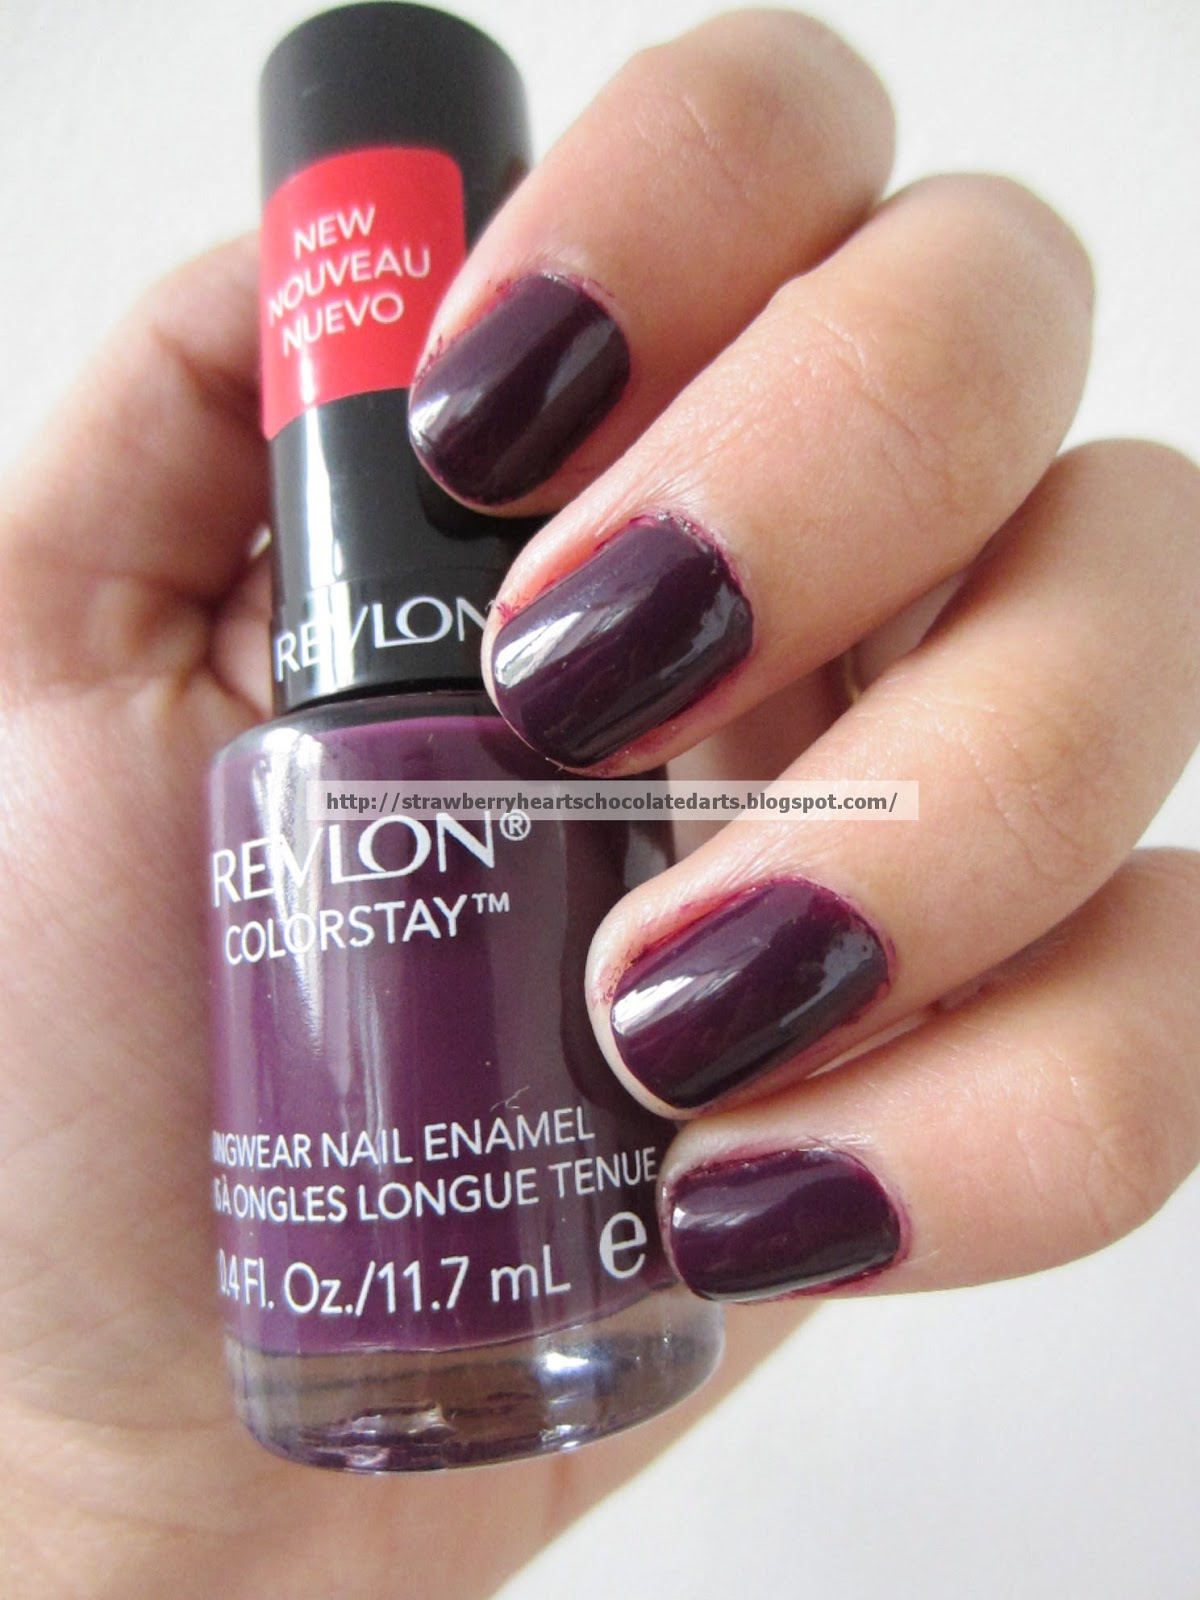 Strawberry Hearts Chocolate Darts: REVLON COLORSTAY NAIL POLISH ...